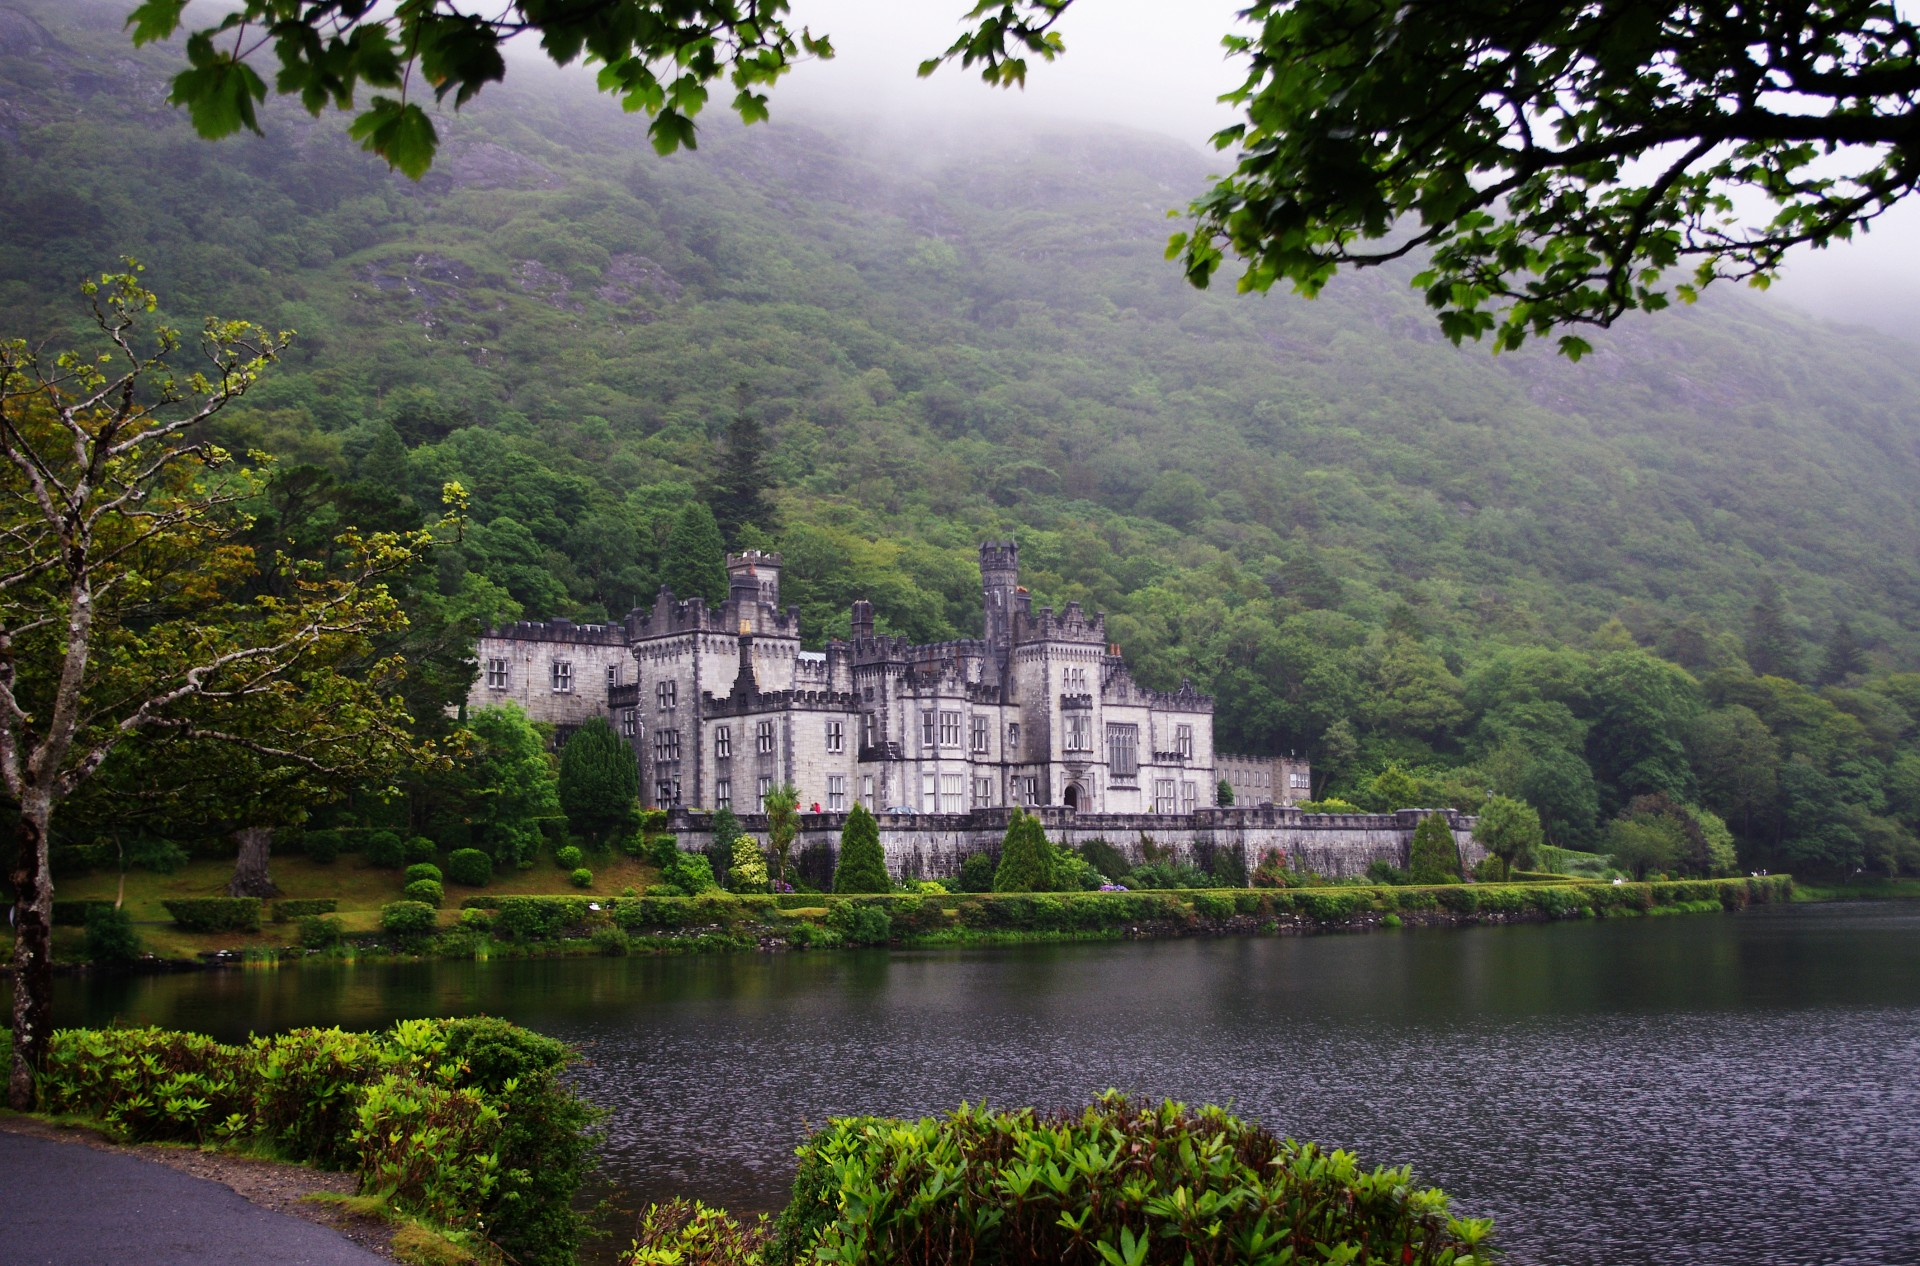 Hd Irish Wallpaper Kylemore Abbey Free Stock Photo Public Domain Pictures